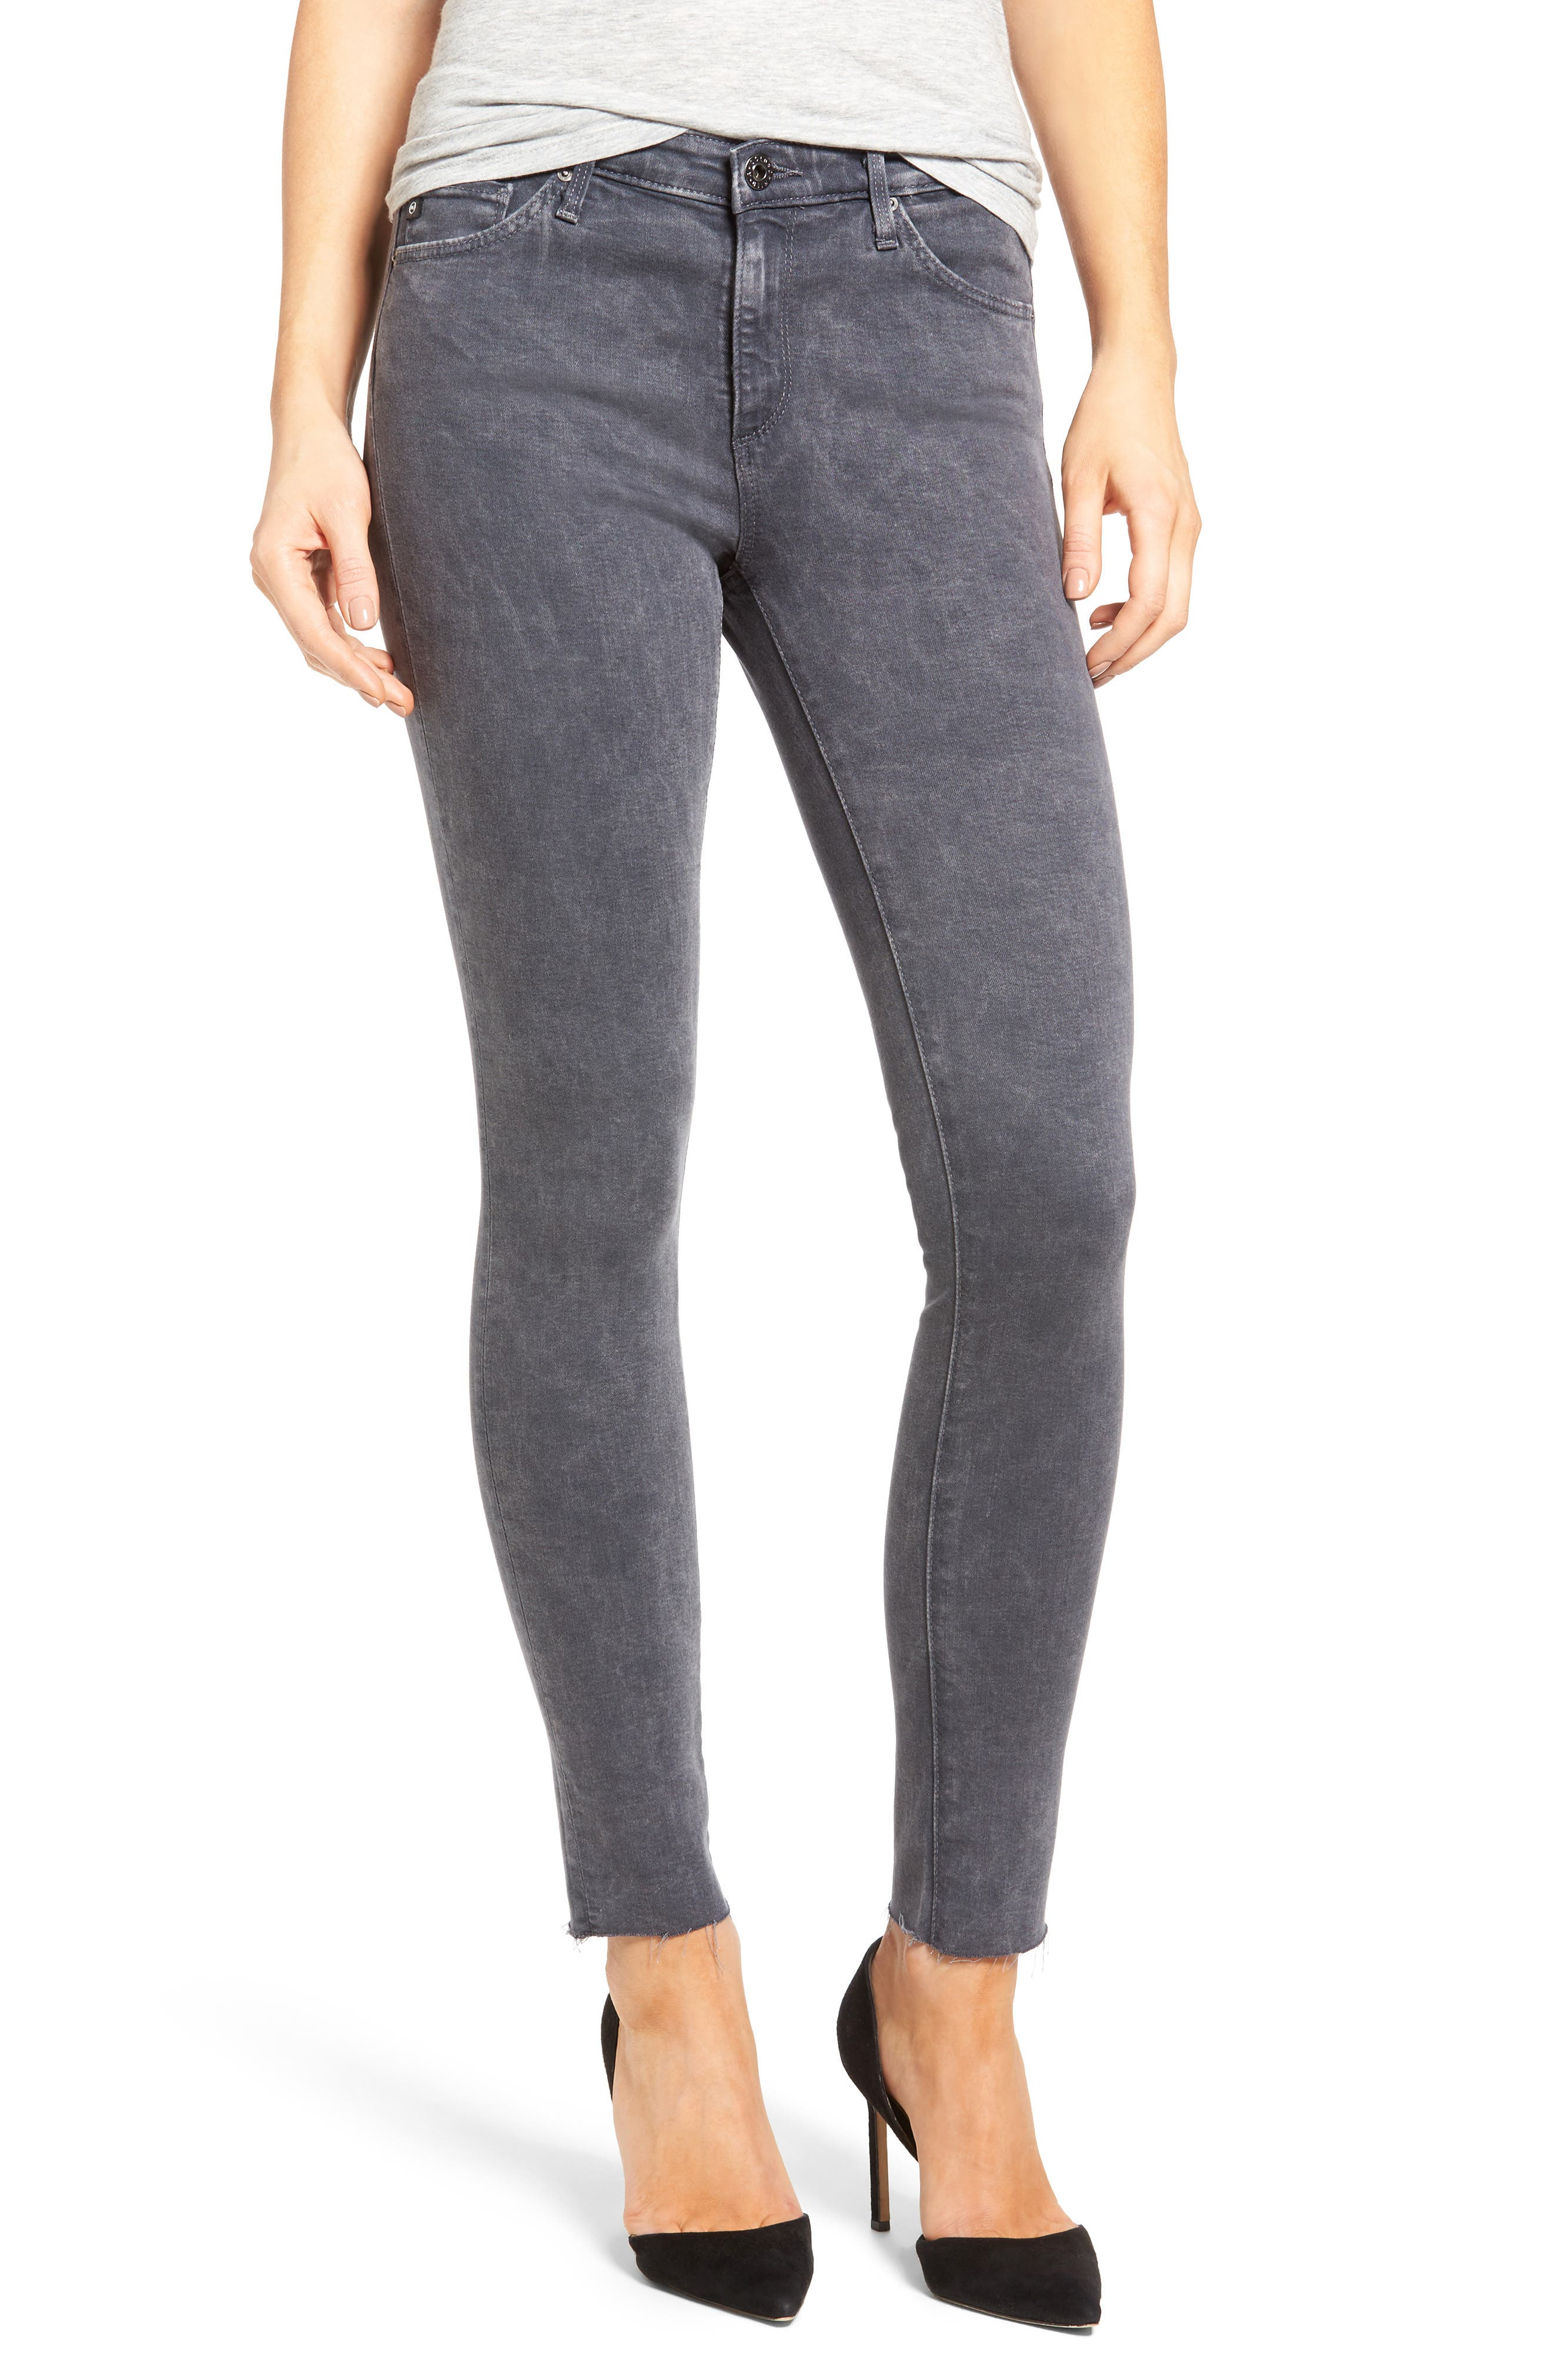 Middi Ankle Skinny Jeans,                             Main thumbnail 1, color,                             039